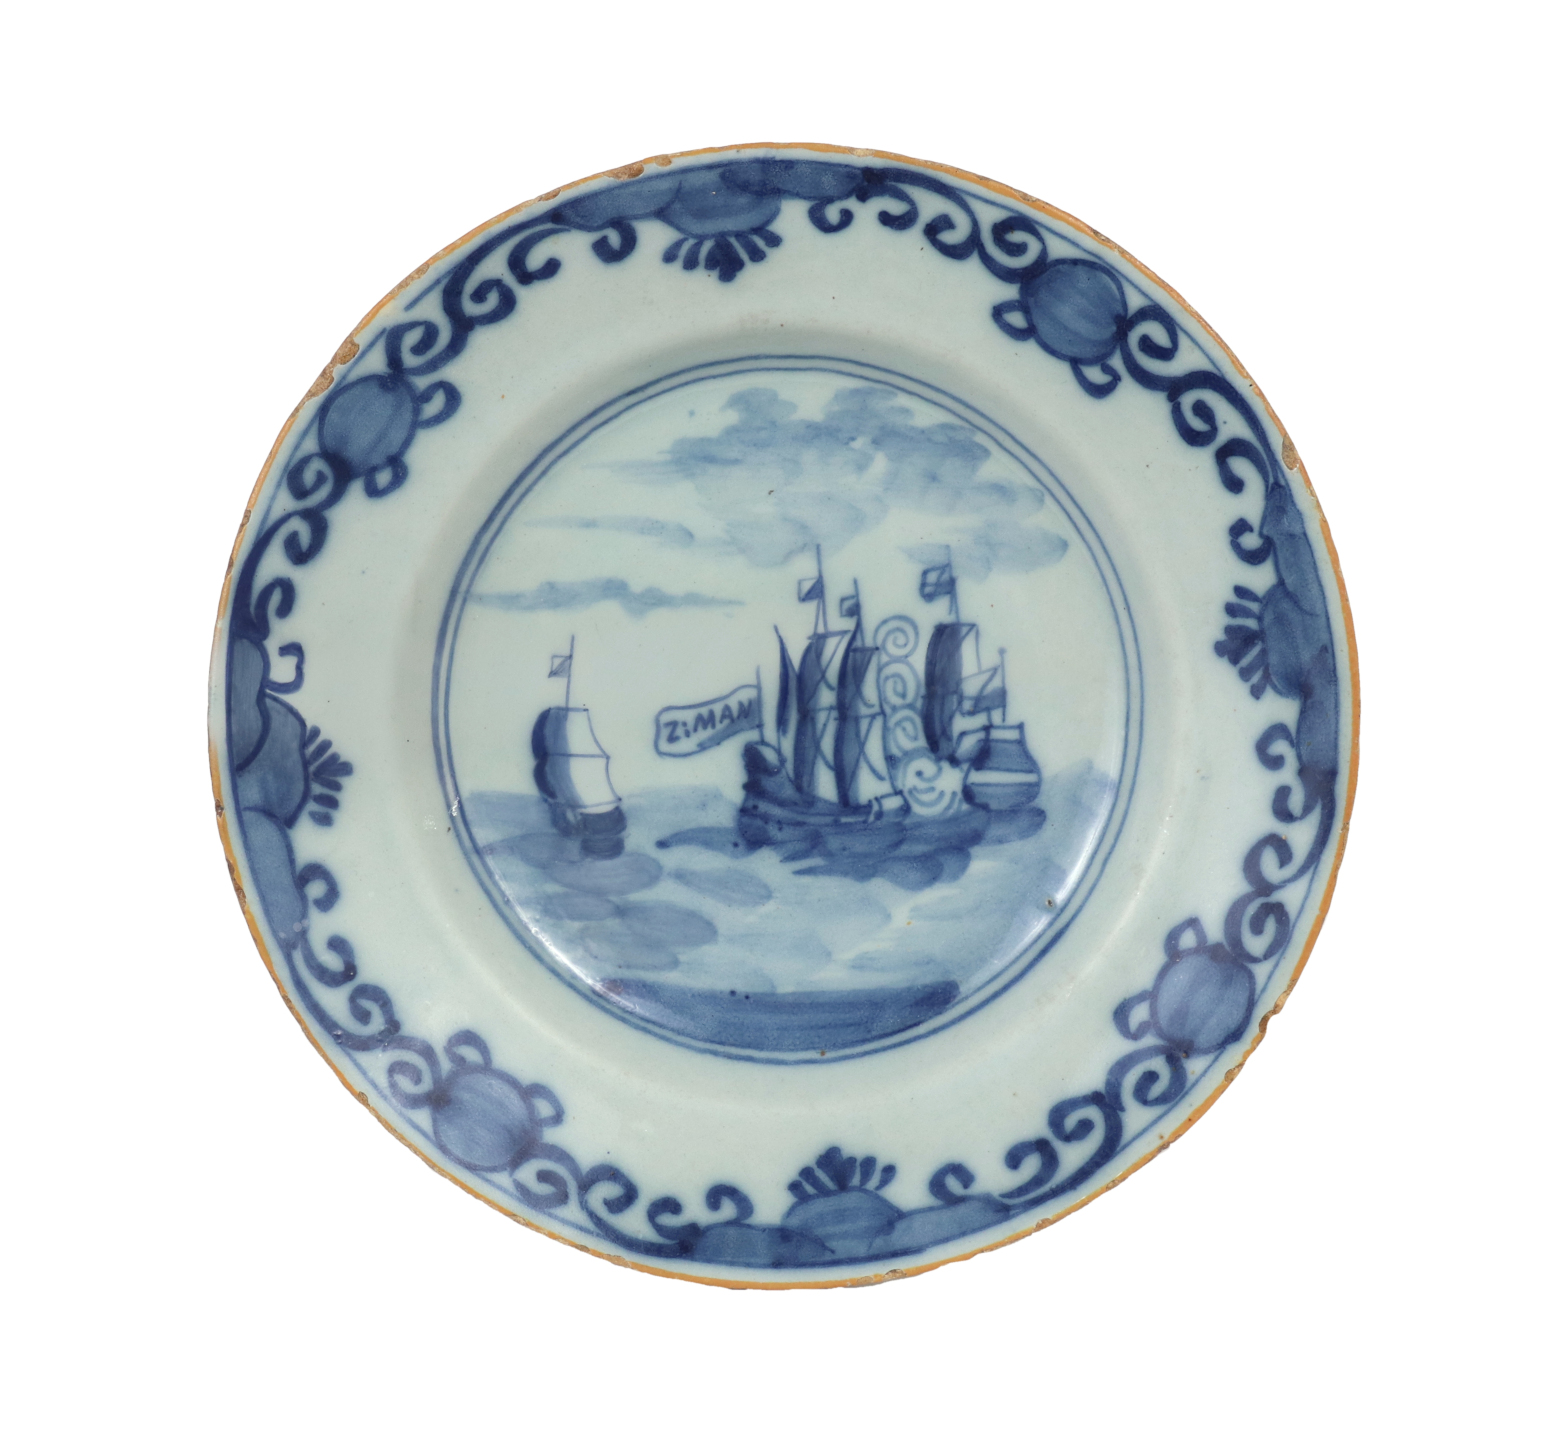 Delft Plate Commerating the Battle of Dogger Bank, c. 1781